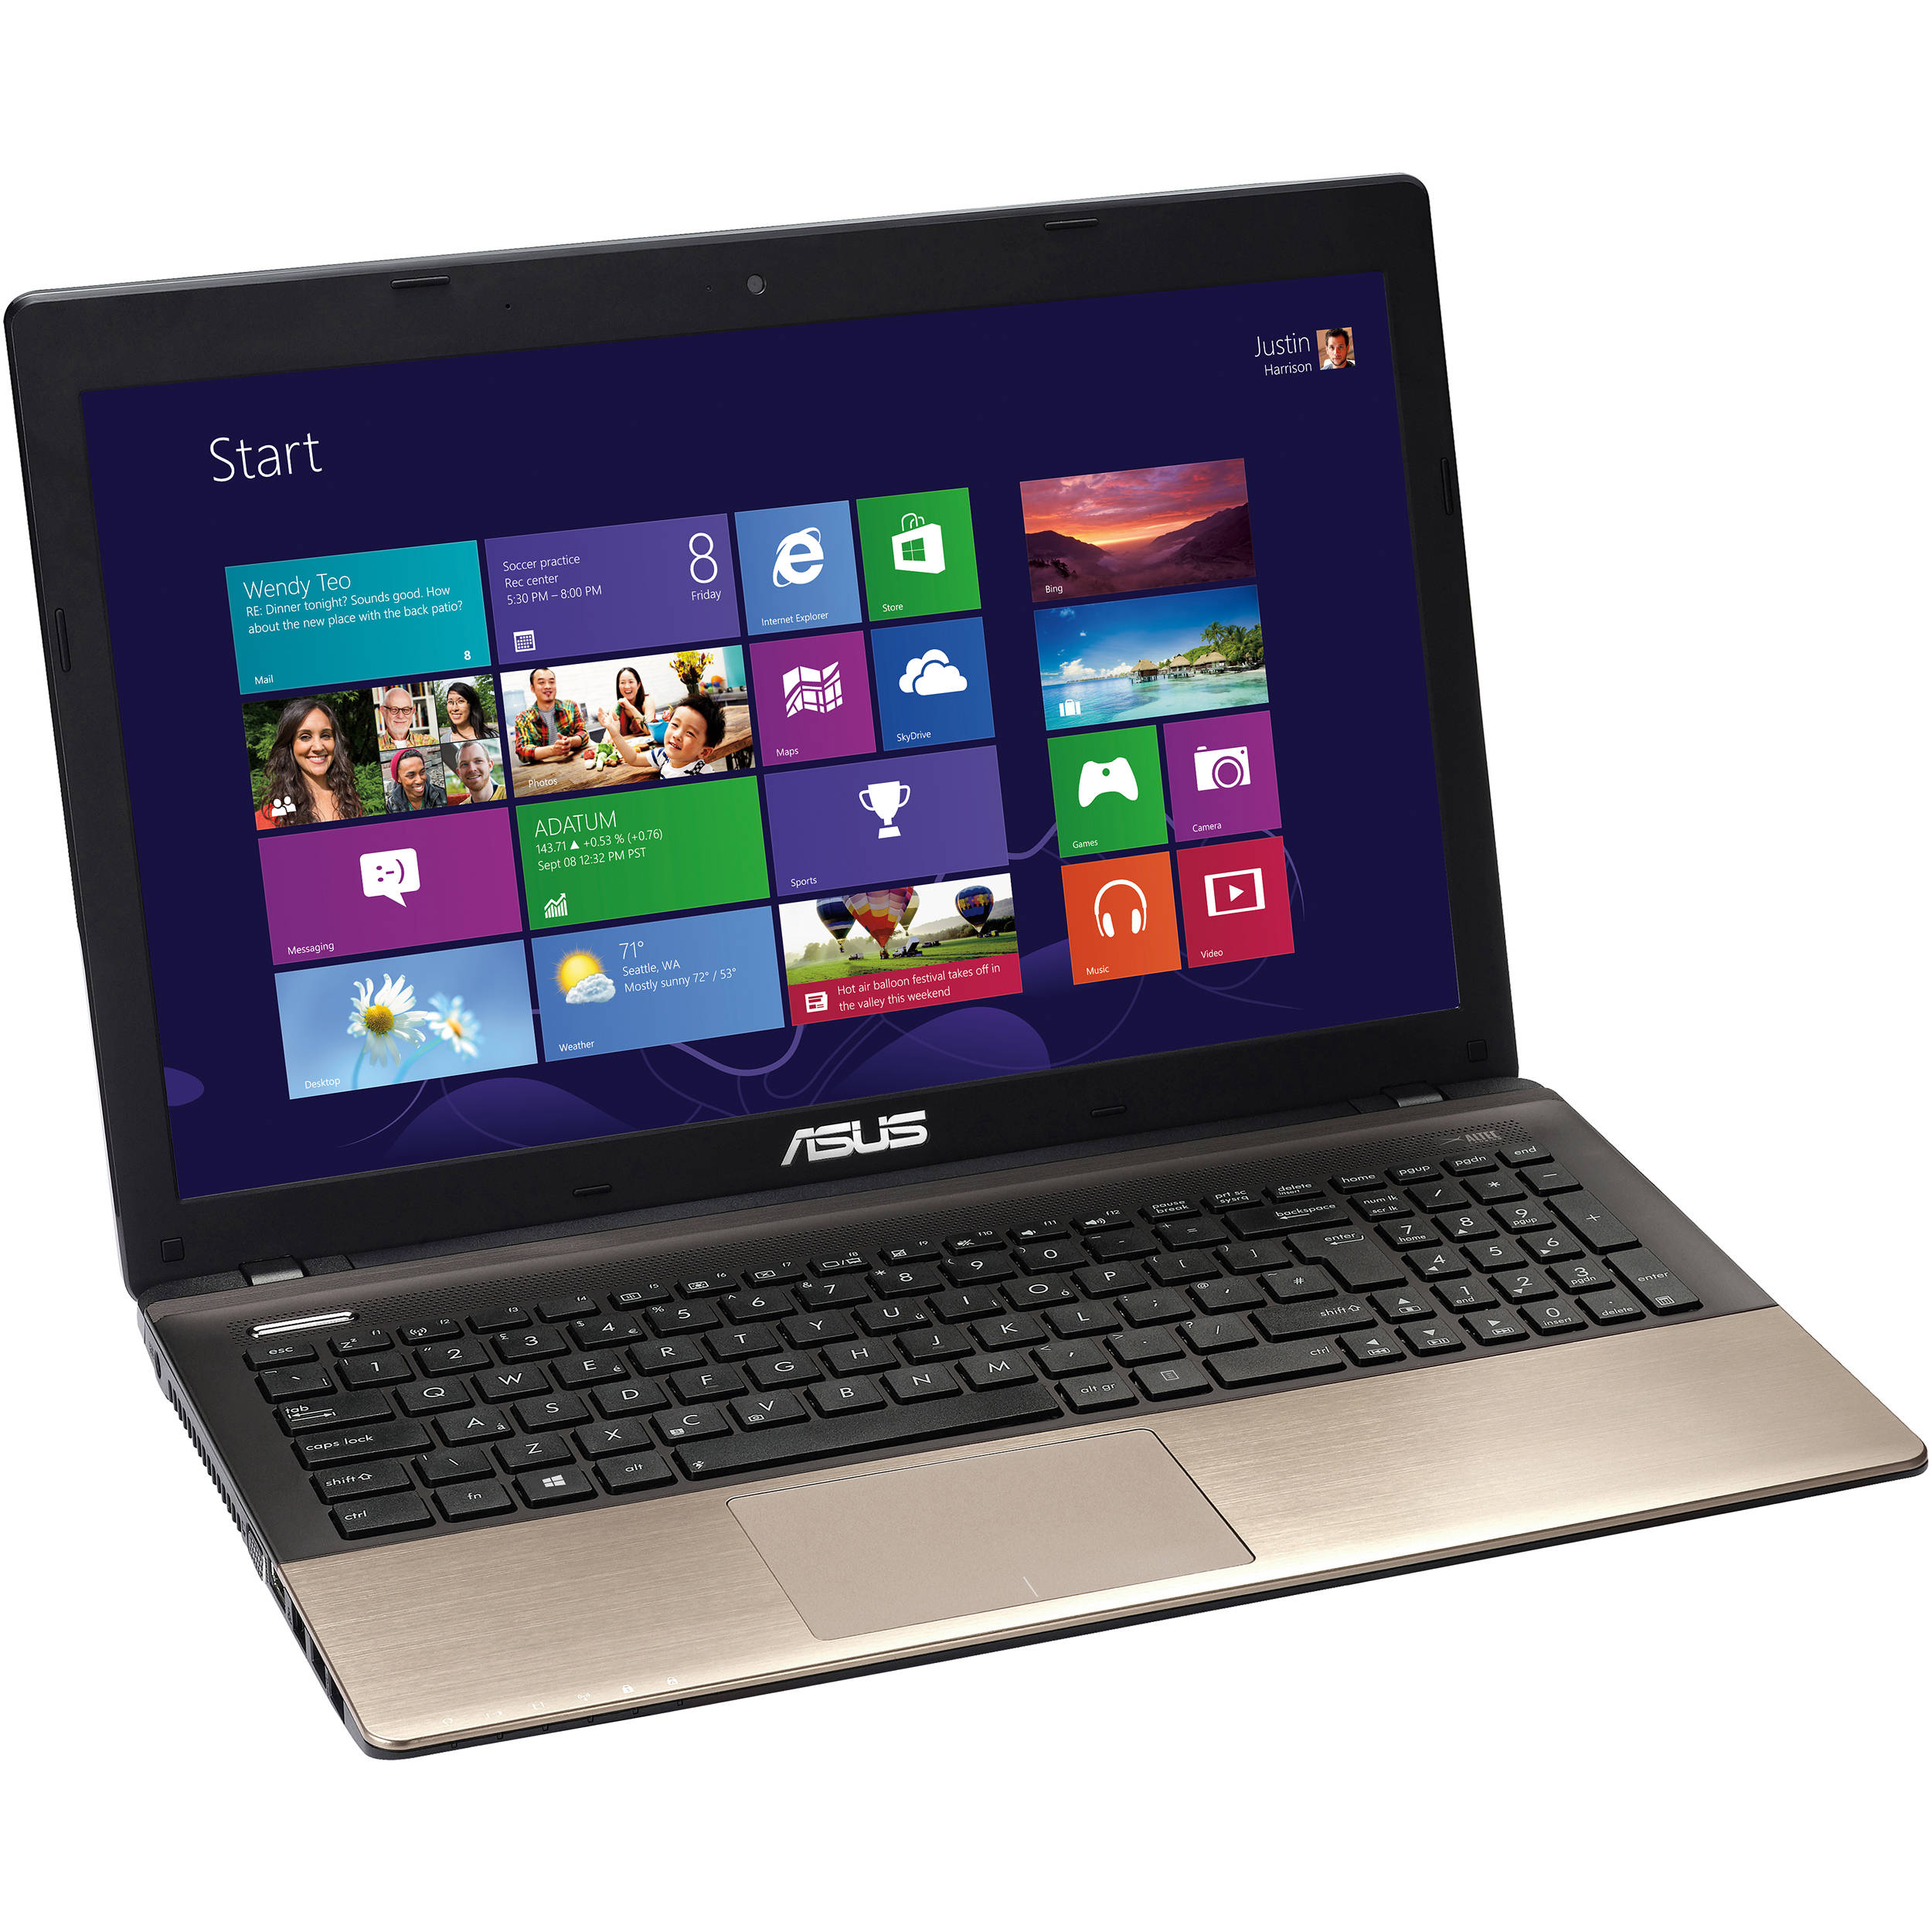 asus k55a dh51 15 6 notebook computer mocha k55a dh51 rh bhphotovideo com Asus Laptop Red Asus Laptop Red